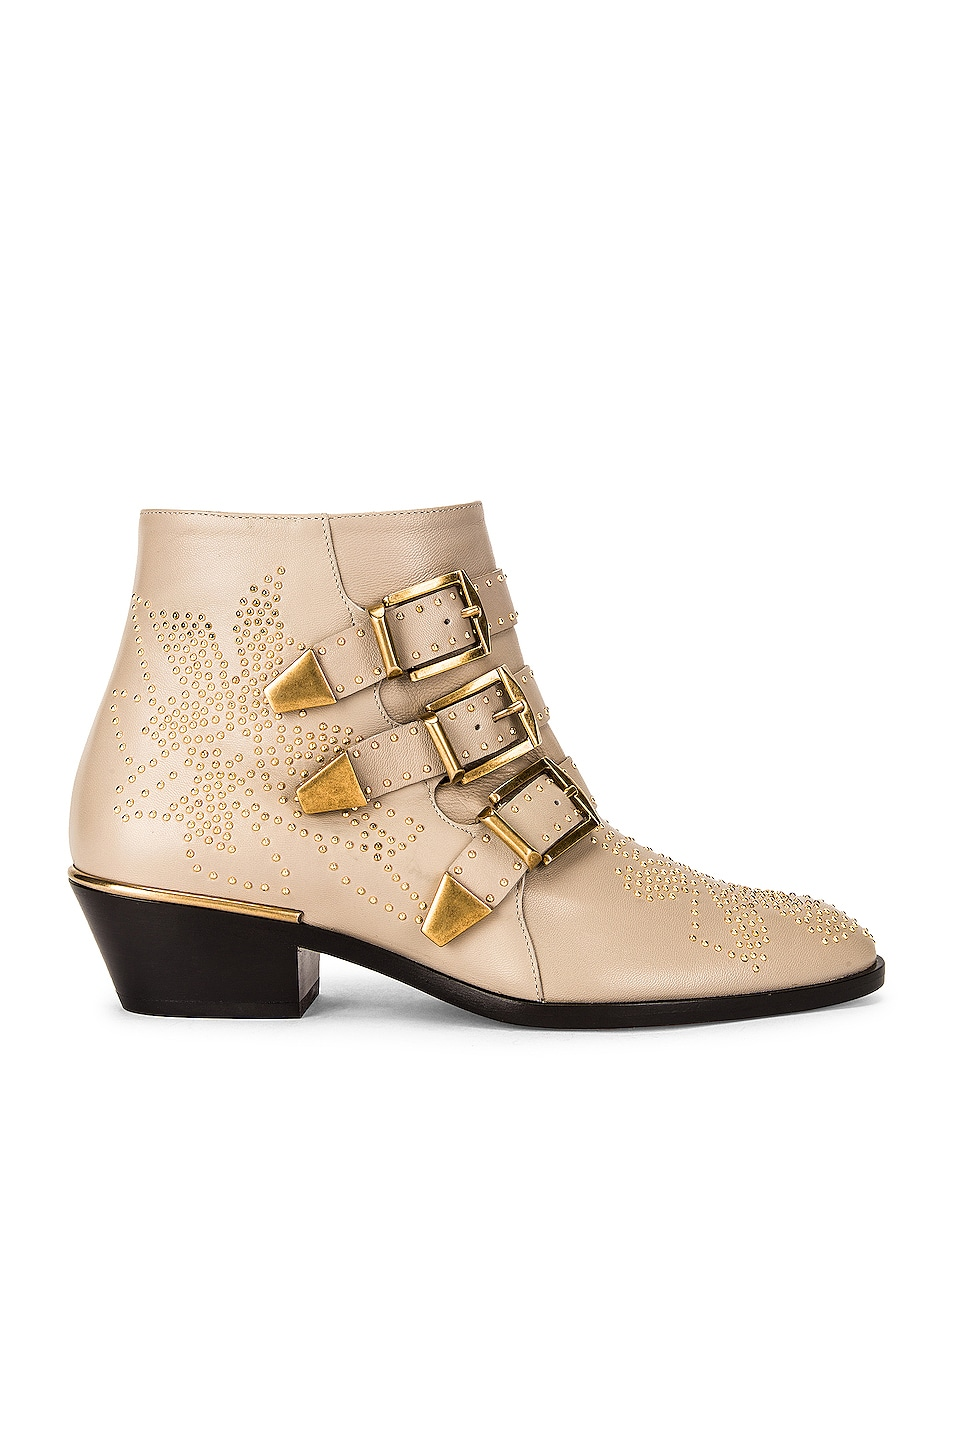 Image 1 of Chloe Susan Short Boots in Nomad Beige